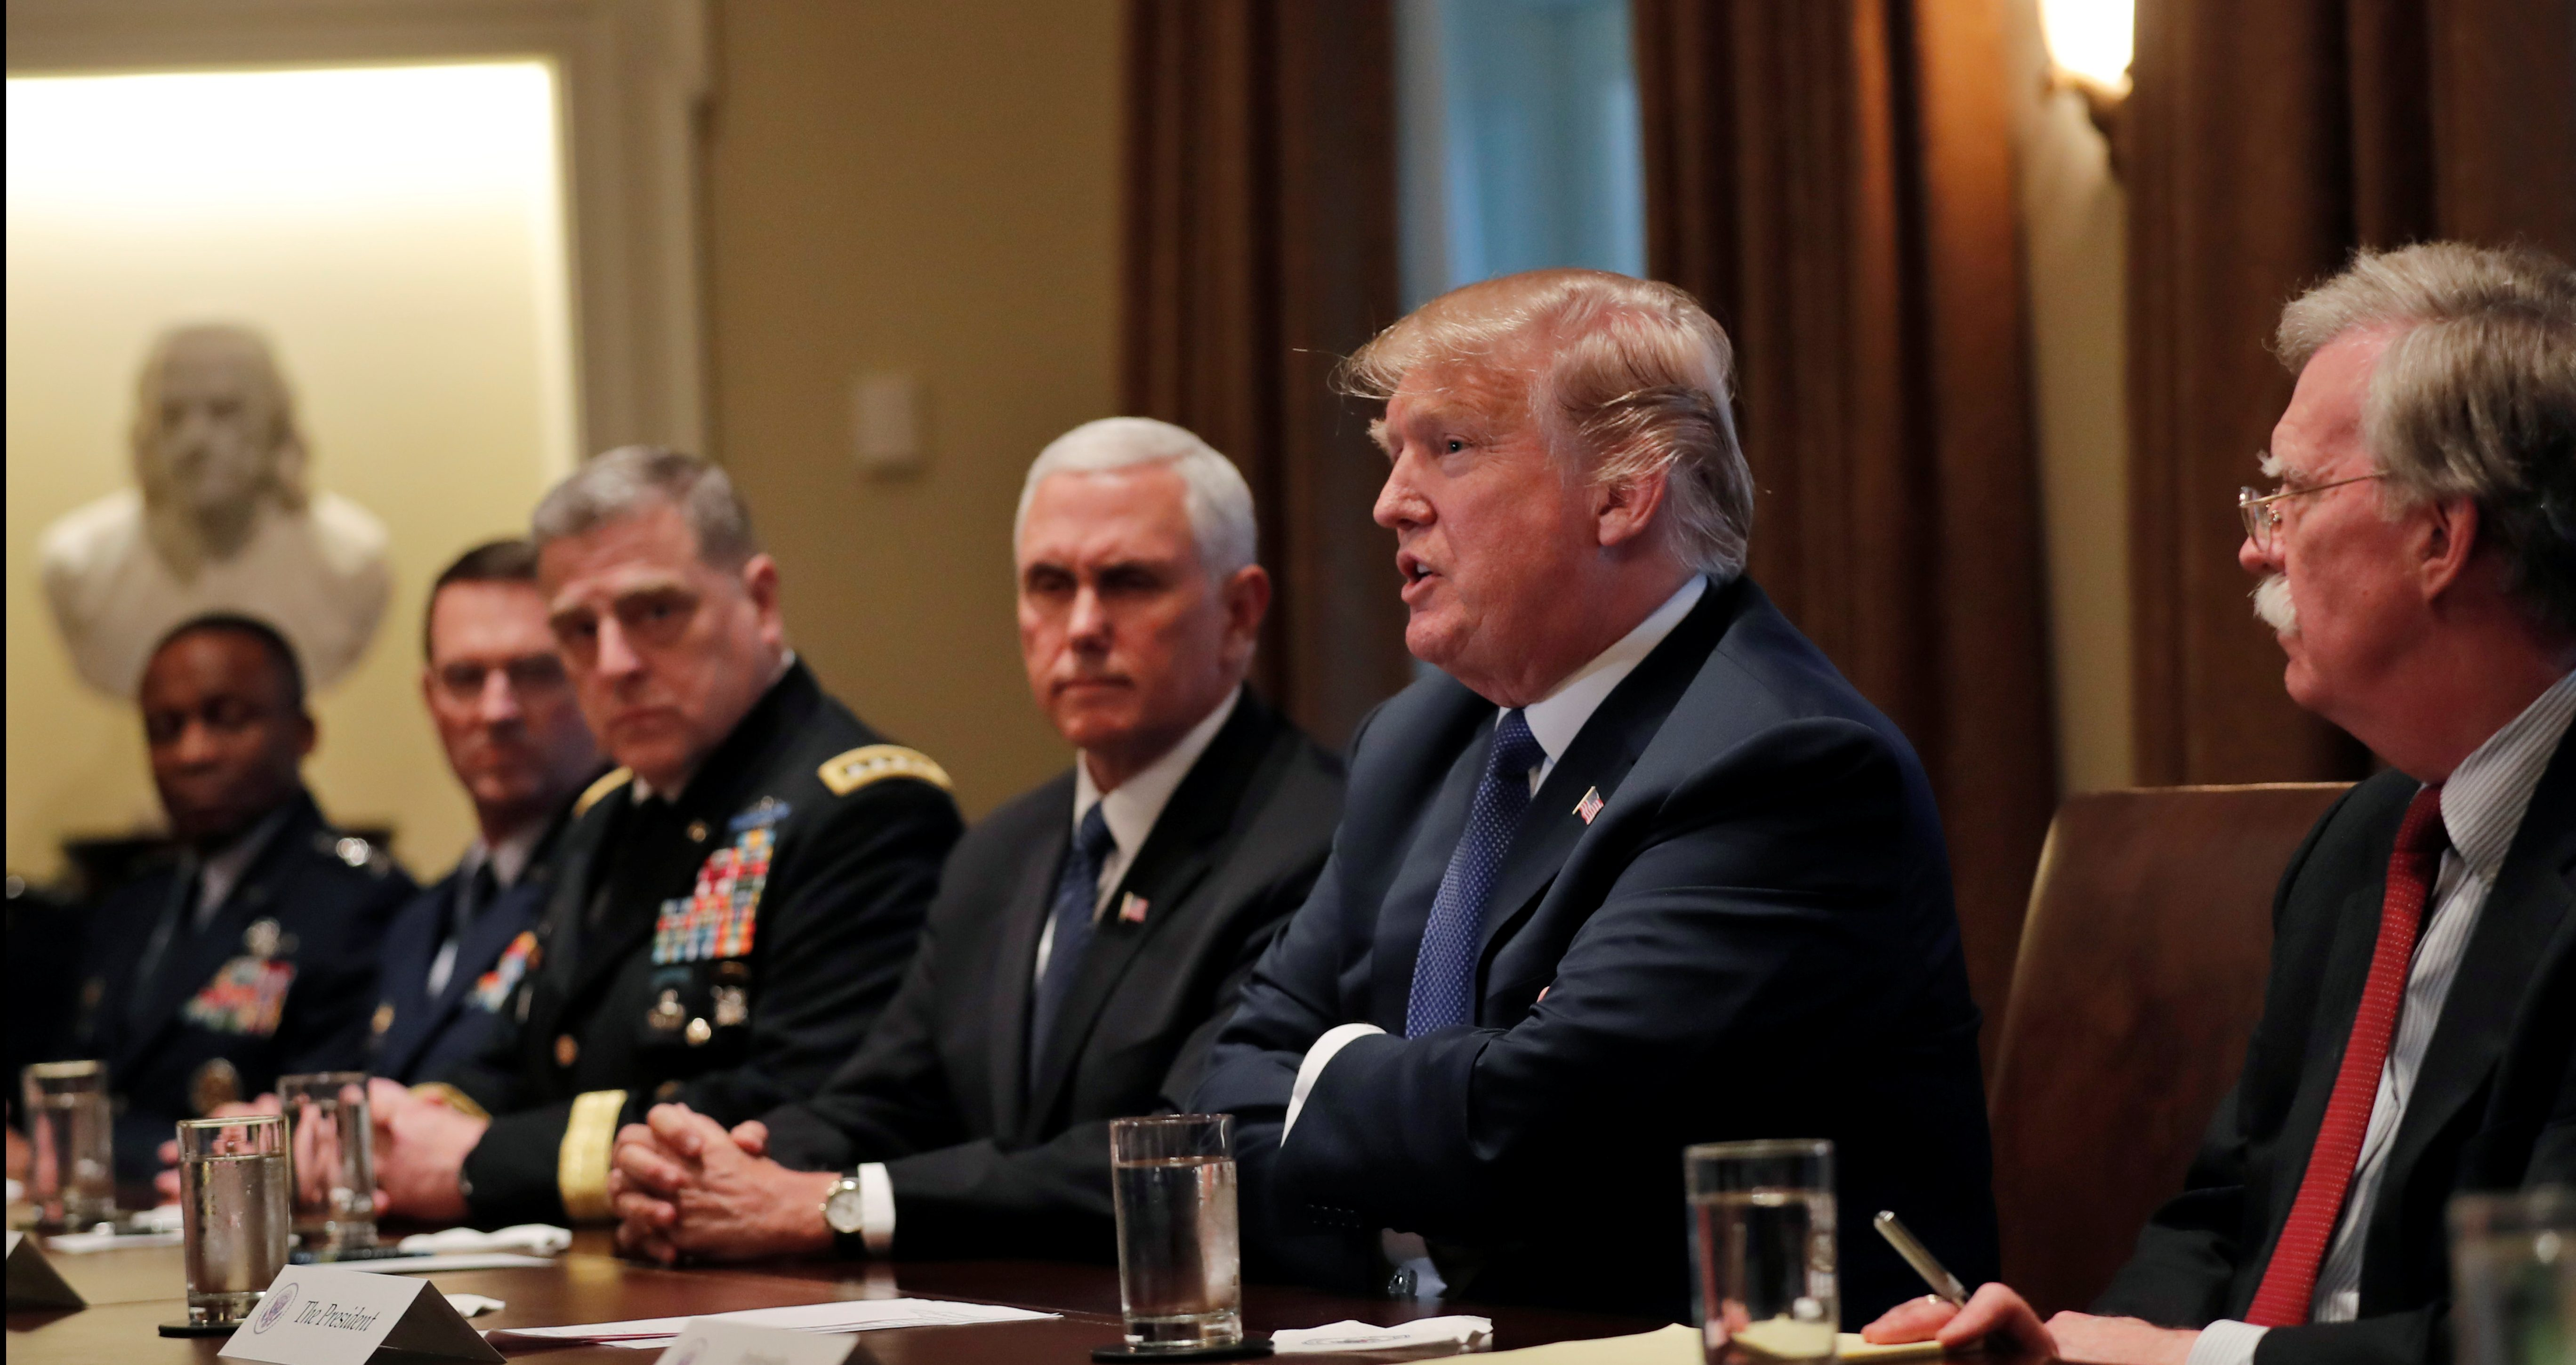 U.S. President Donald Trump receives a briefing from senior military leadership accompanied by Vice President Mike Pence and new National Security Adviser John Bolton.